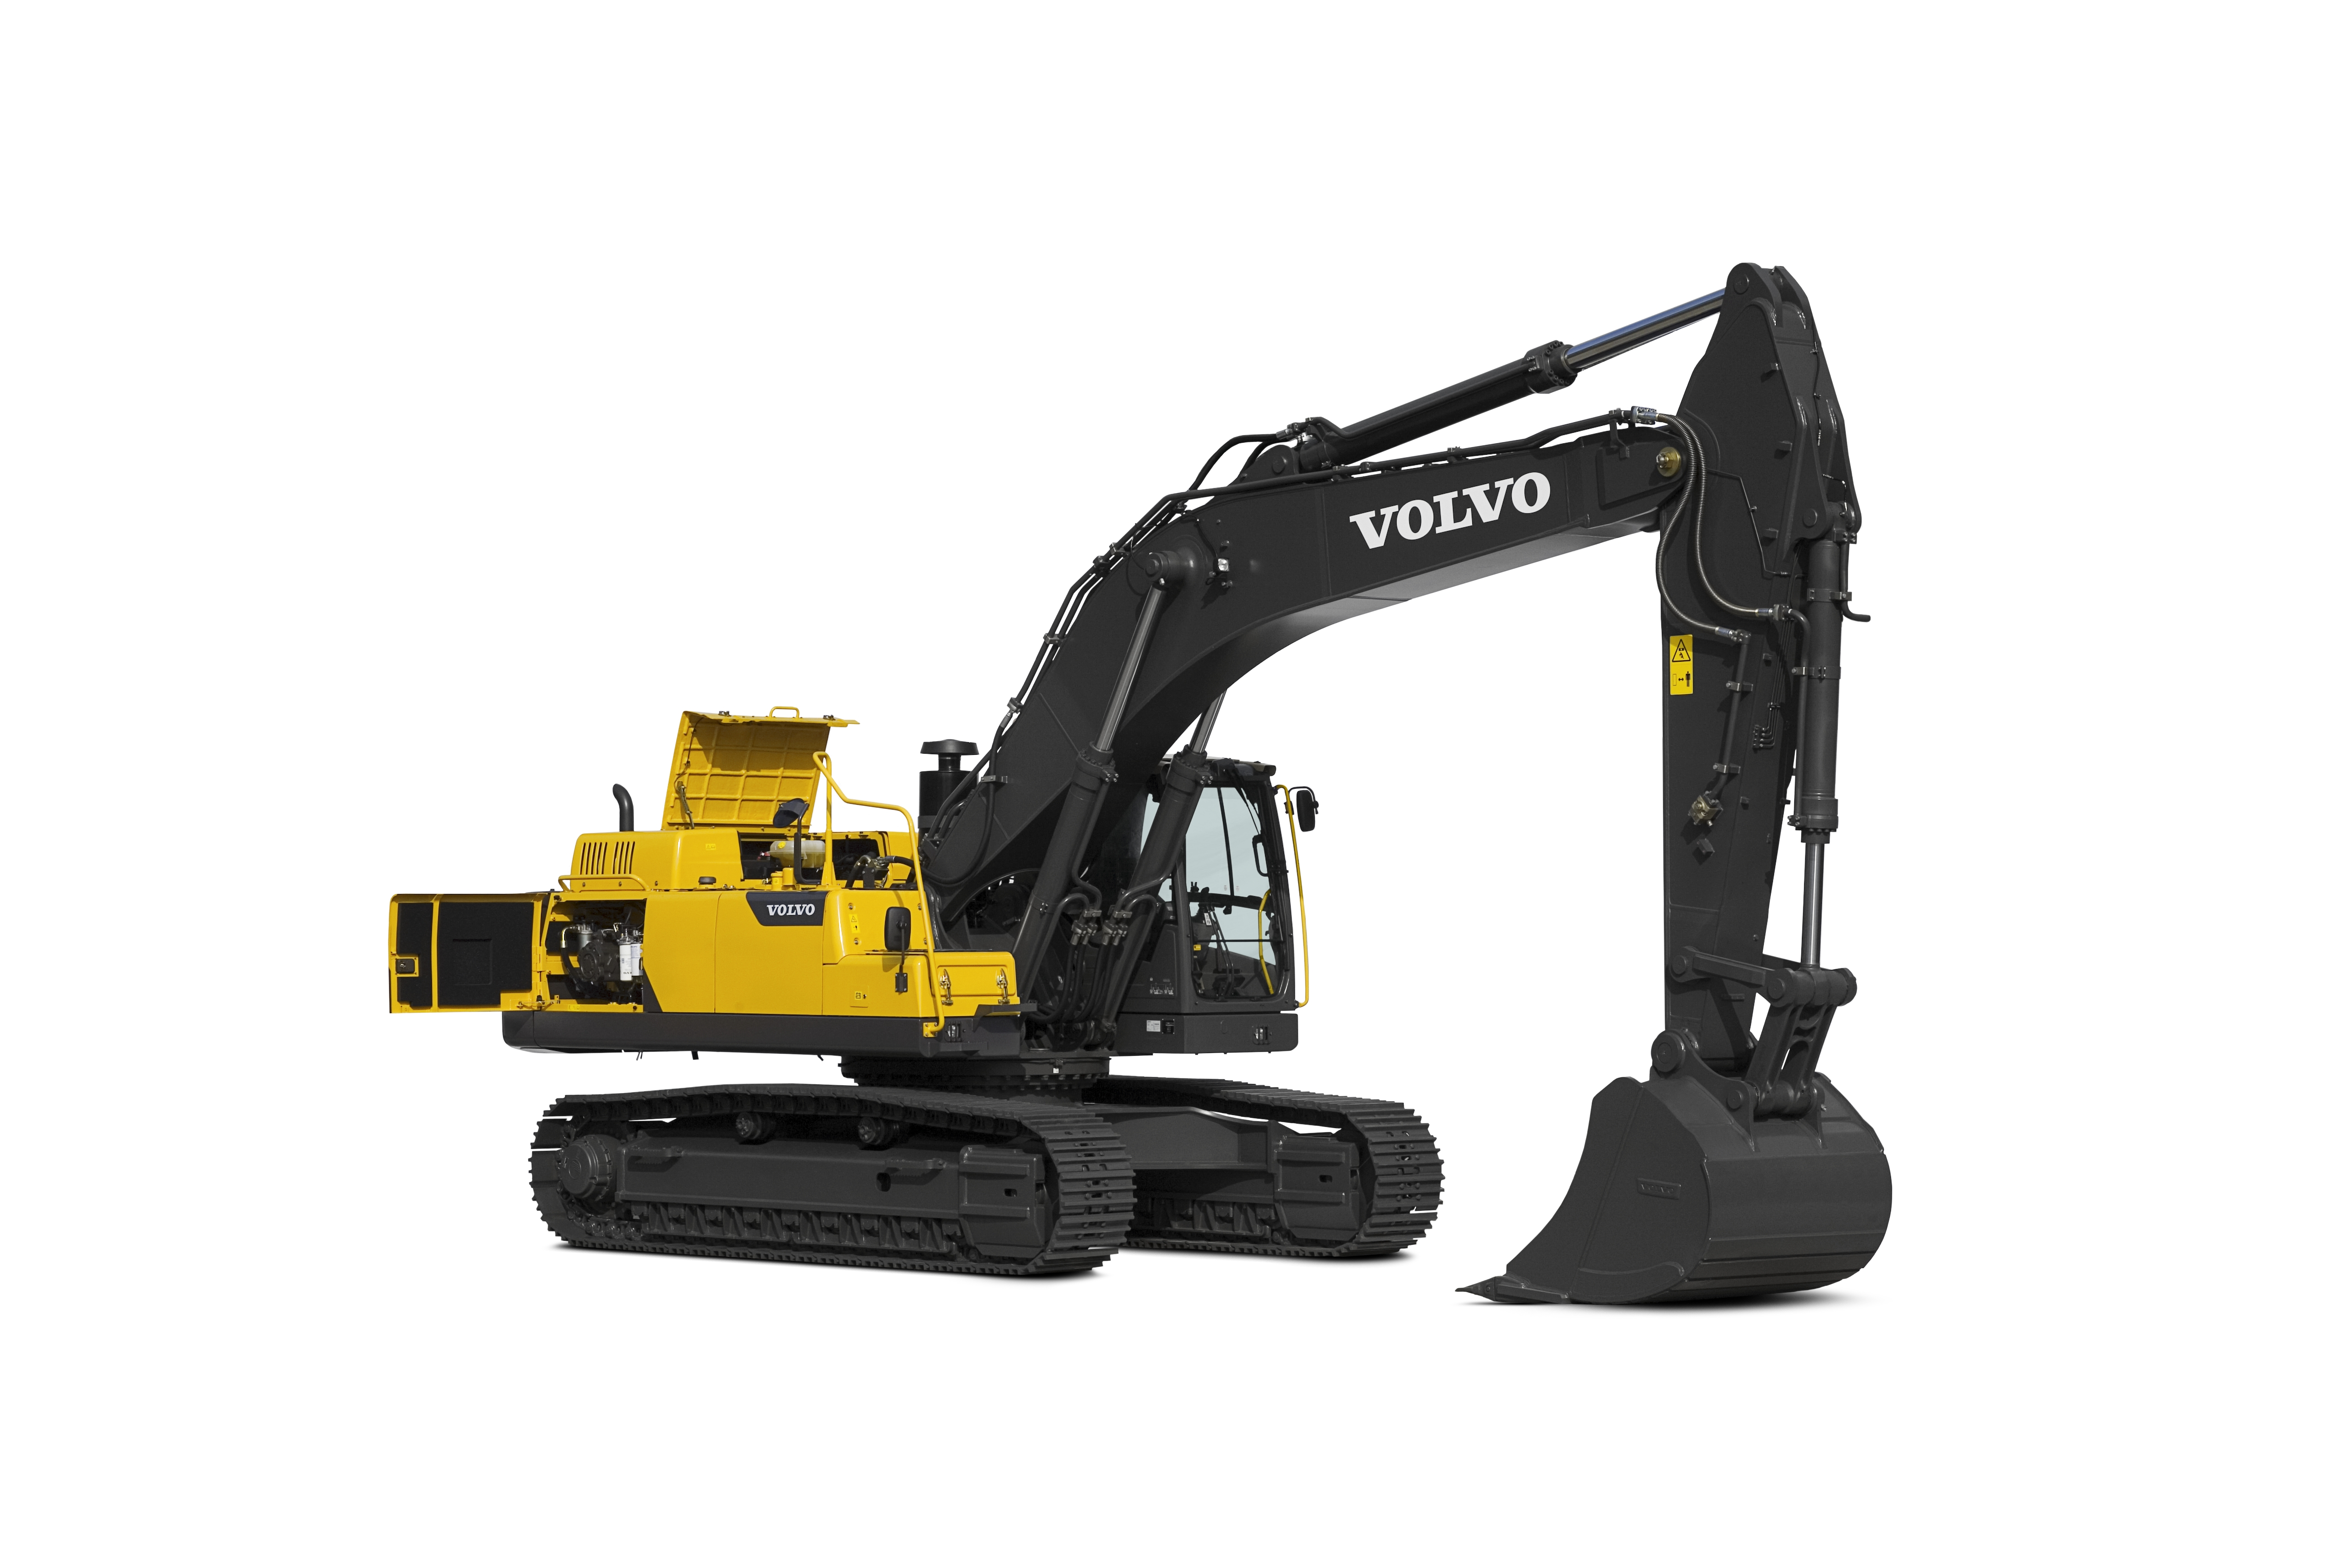 Volvo EC380DL Specifications & Technical Data (2011-2015) | LECTURA Specs